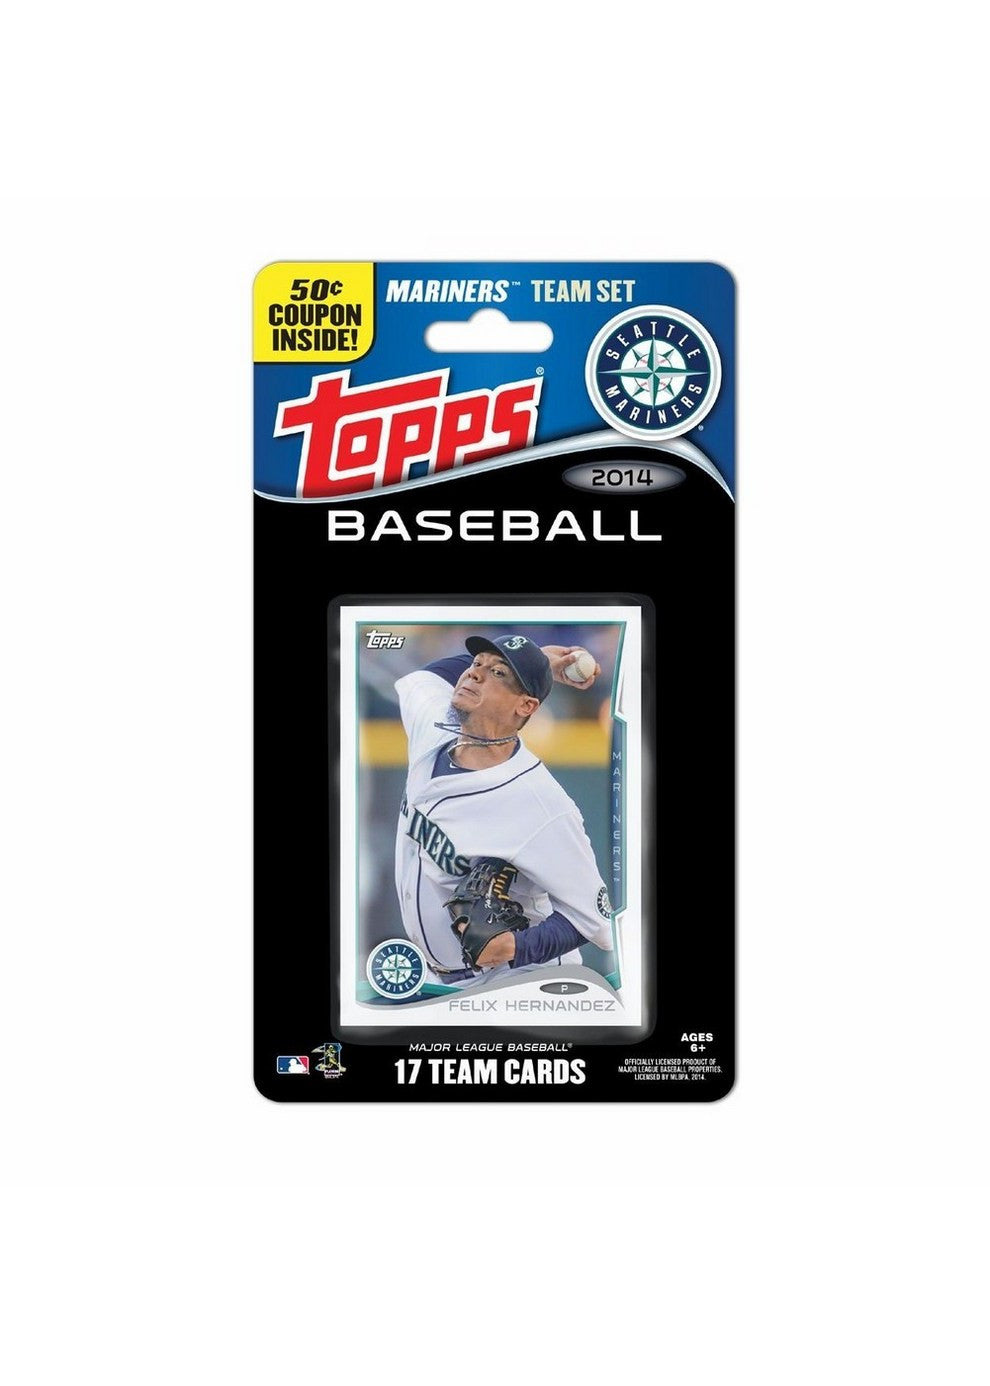 2014 Topps MLB Sets Seattle Mariners